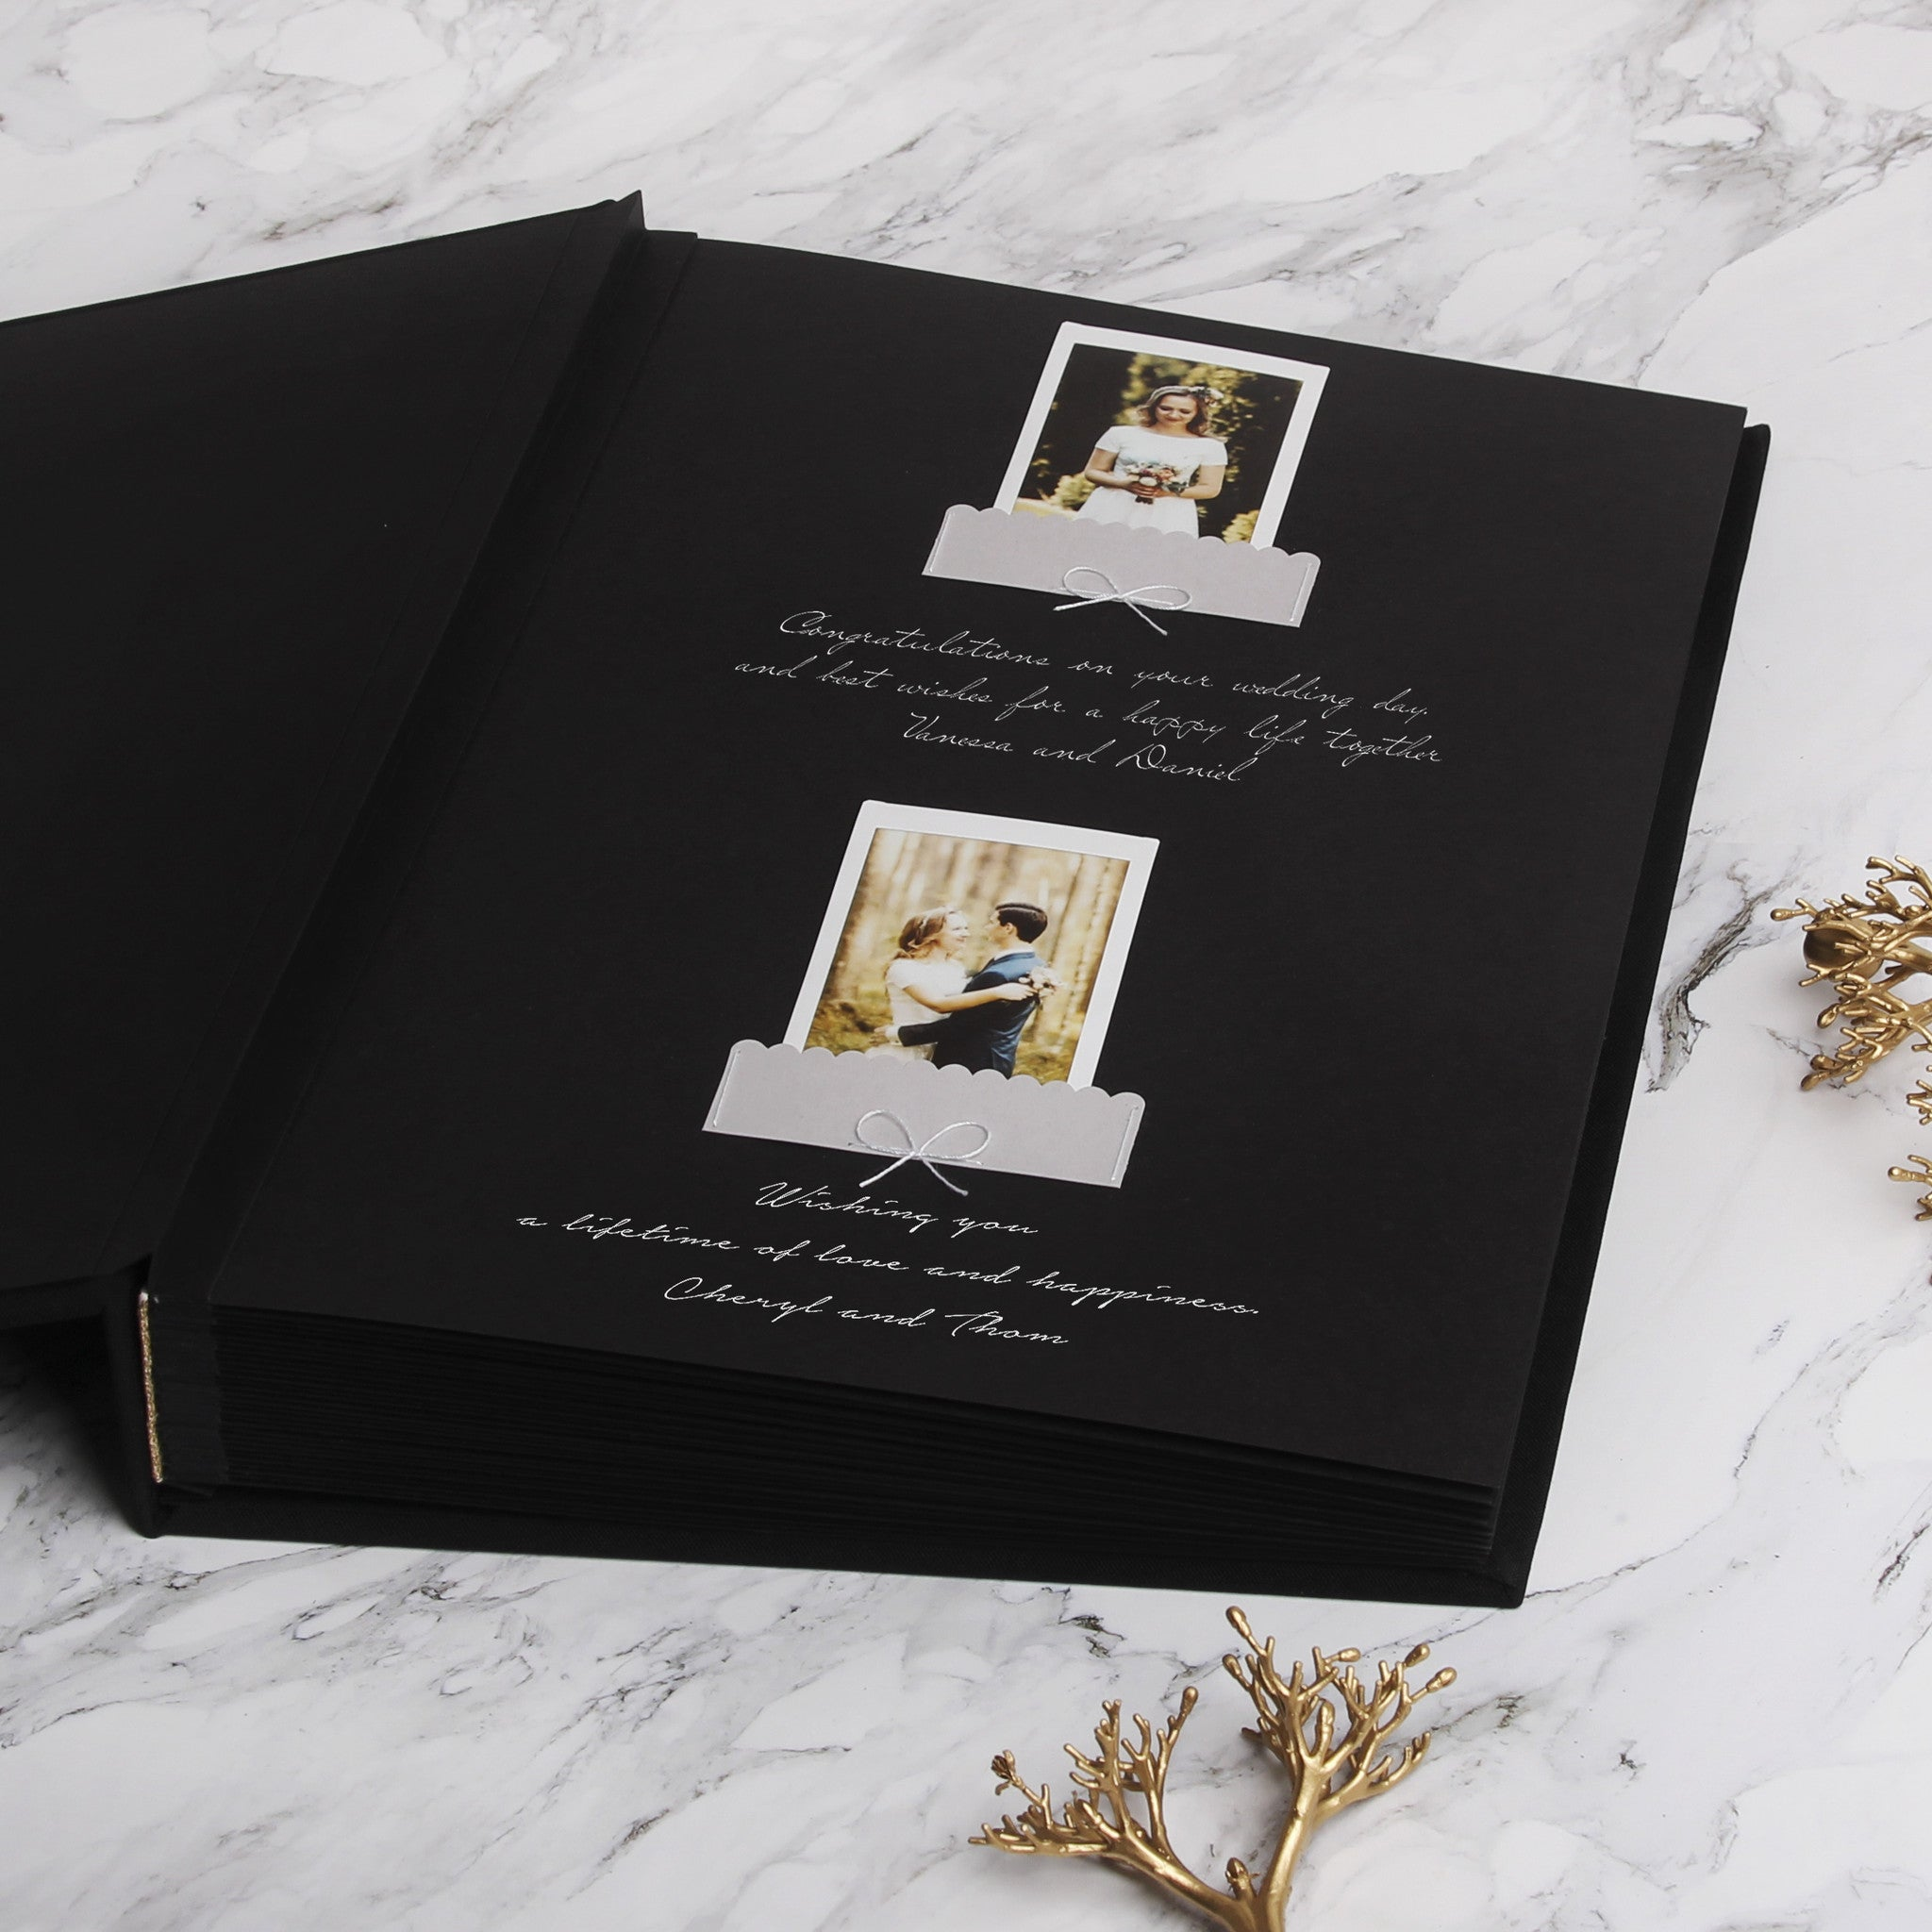 Guest Book Sign in Book Instant Album Black with Gold Lettering Black pages, Guestbook Ideas - Liumy